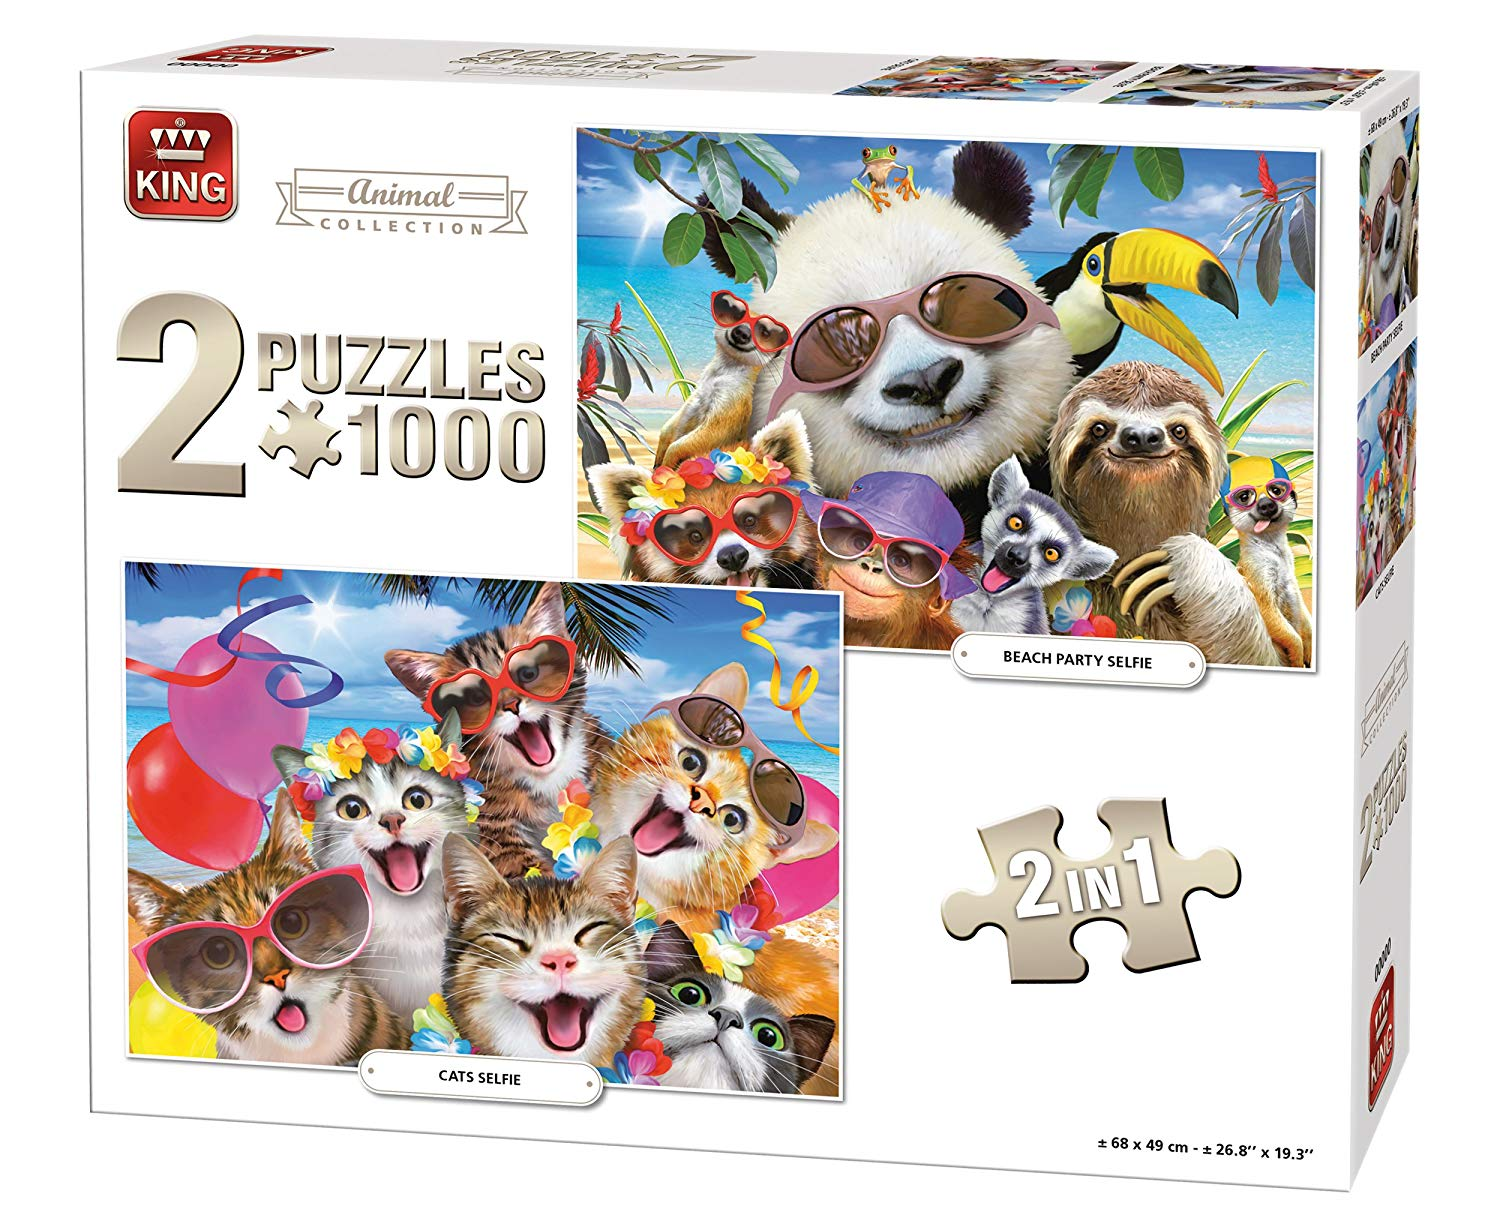 king-international-2-puzzles-animal-collection-1000-teile-puzzle-king-puzzle-05216